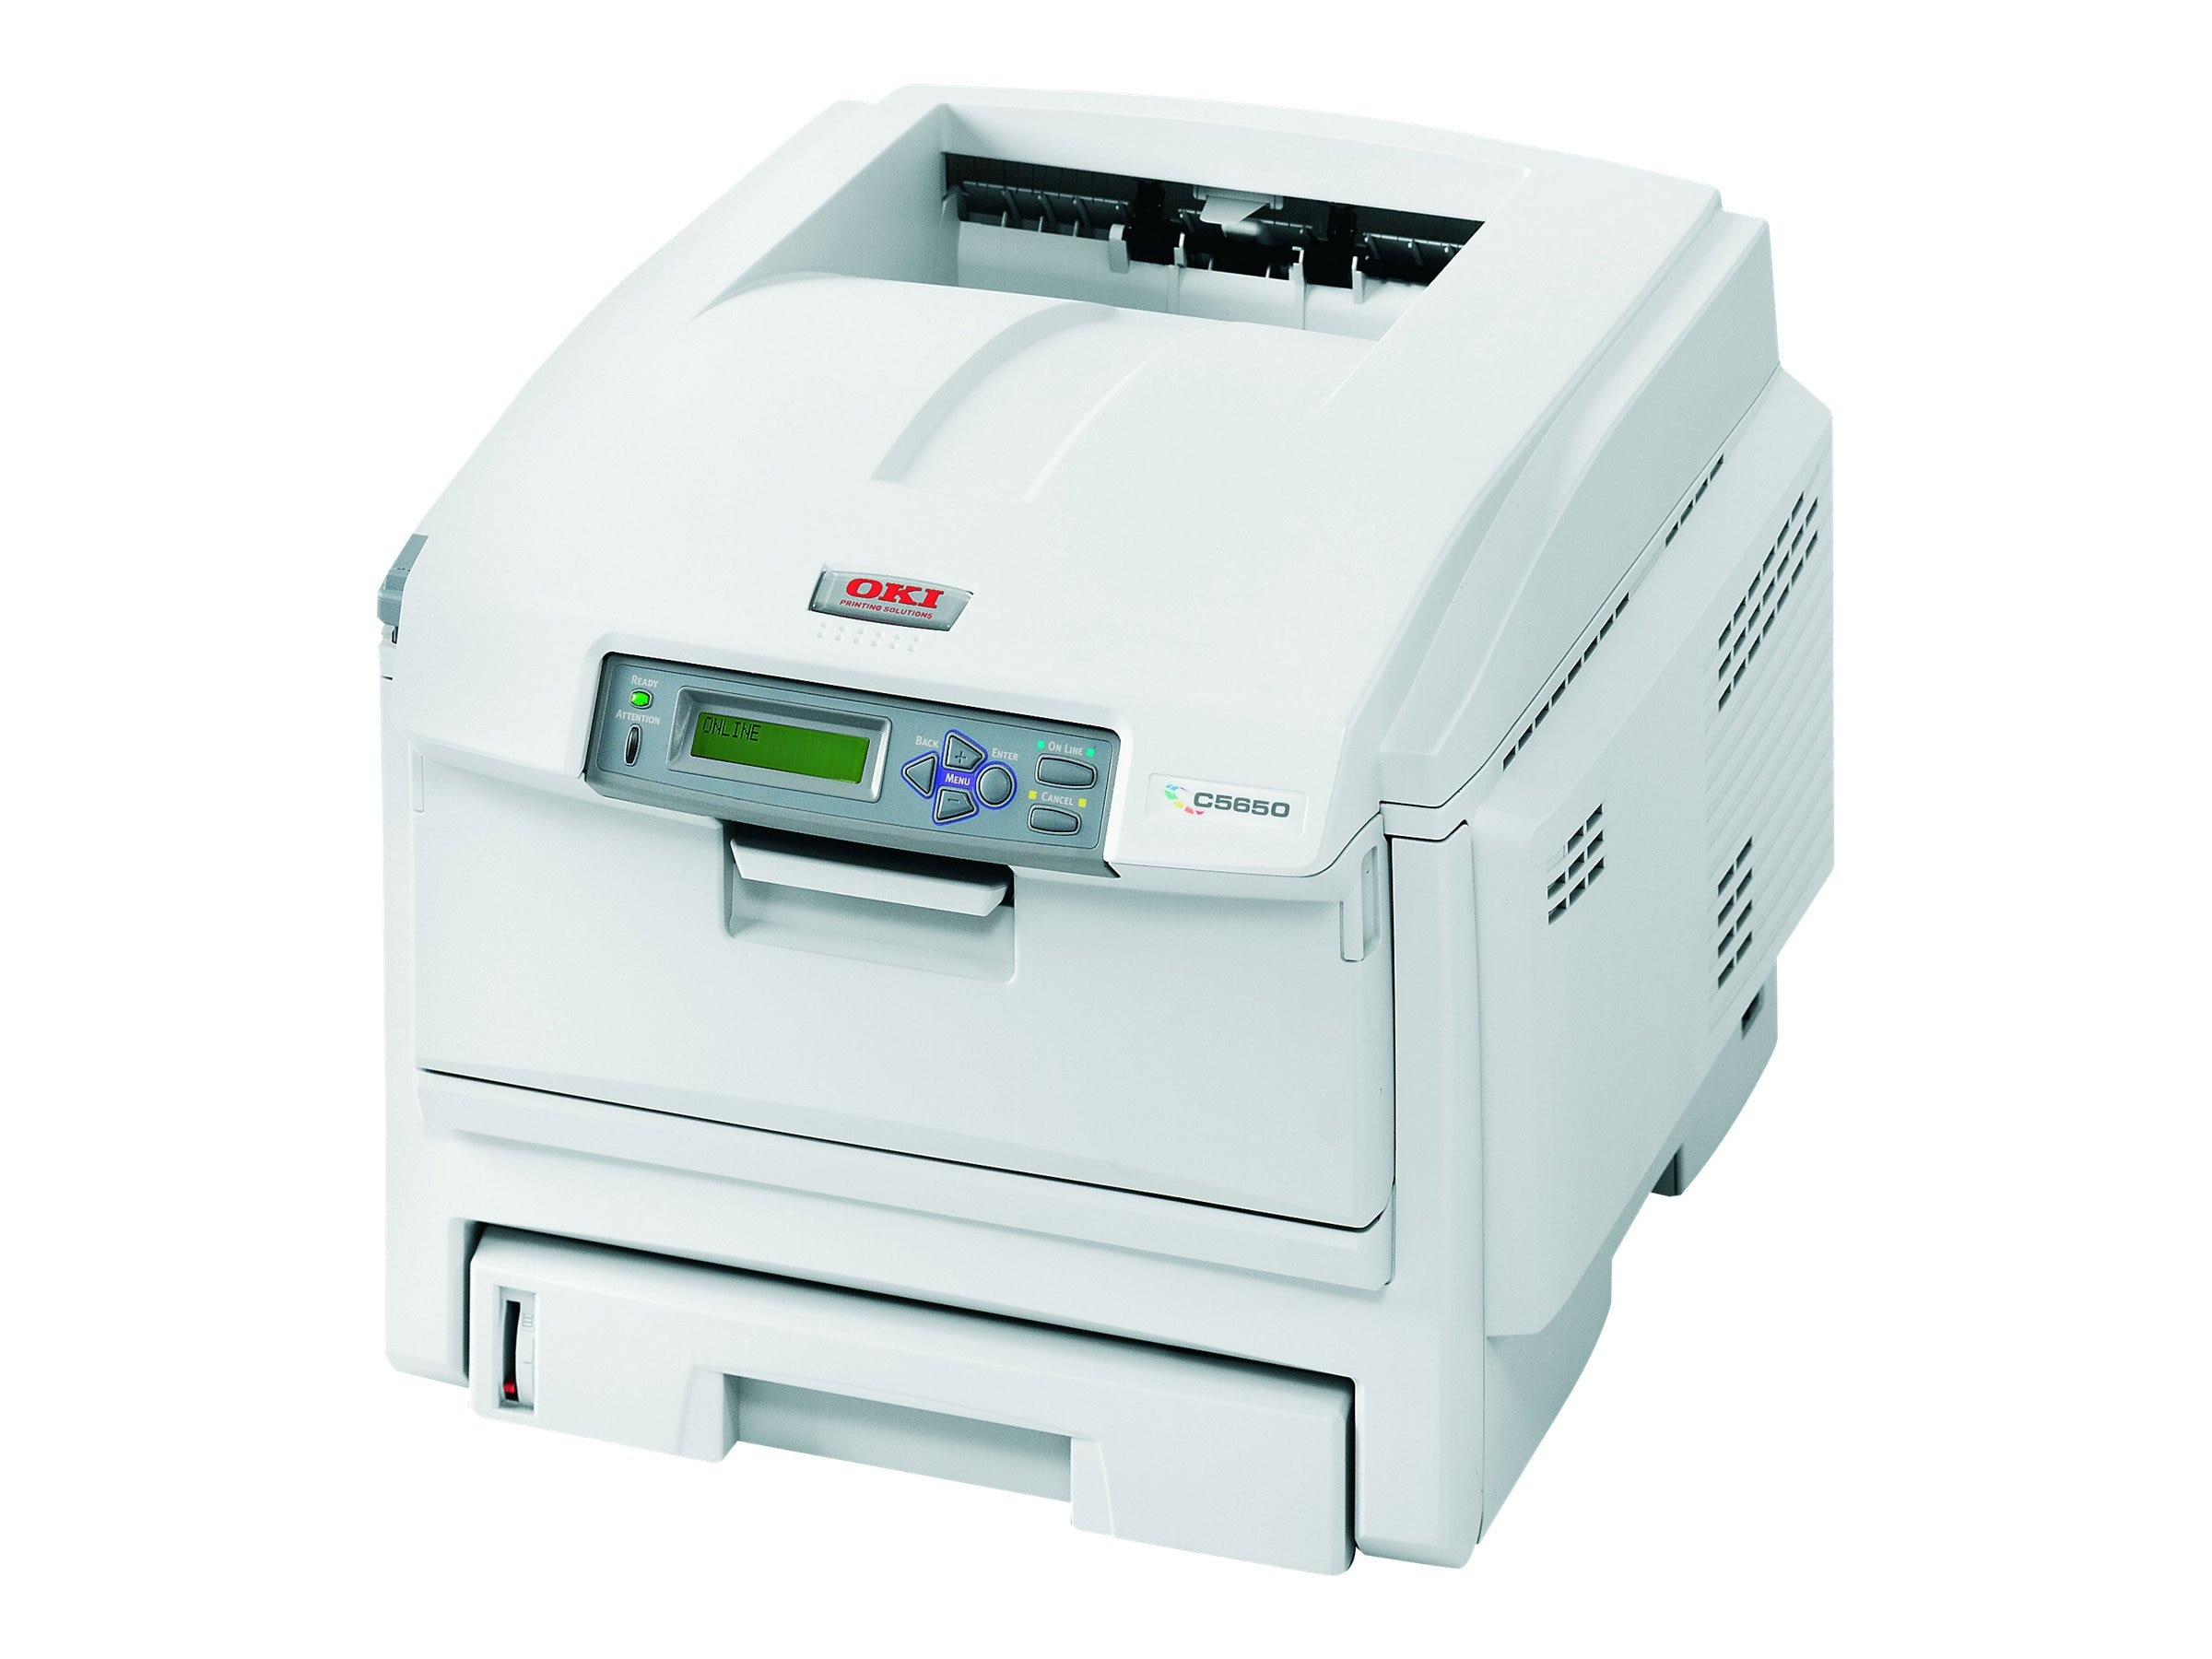 Oki C9650hn Color Laser Printer